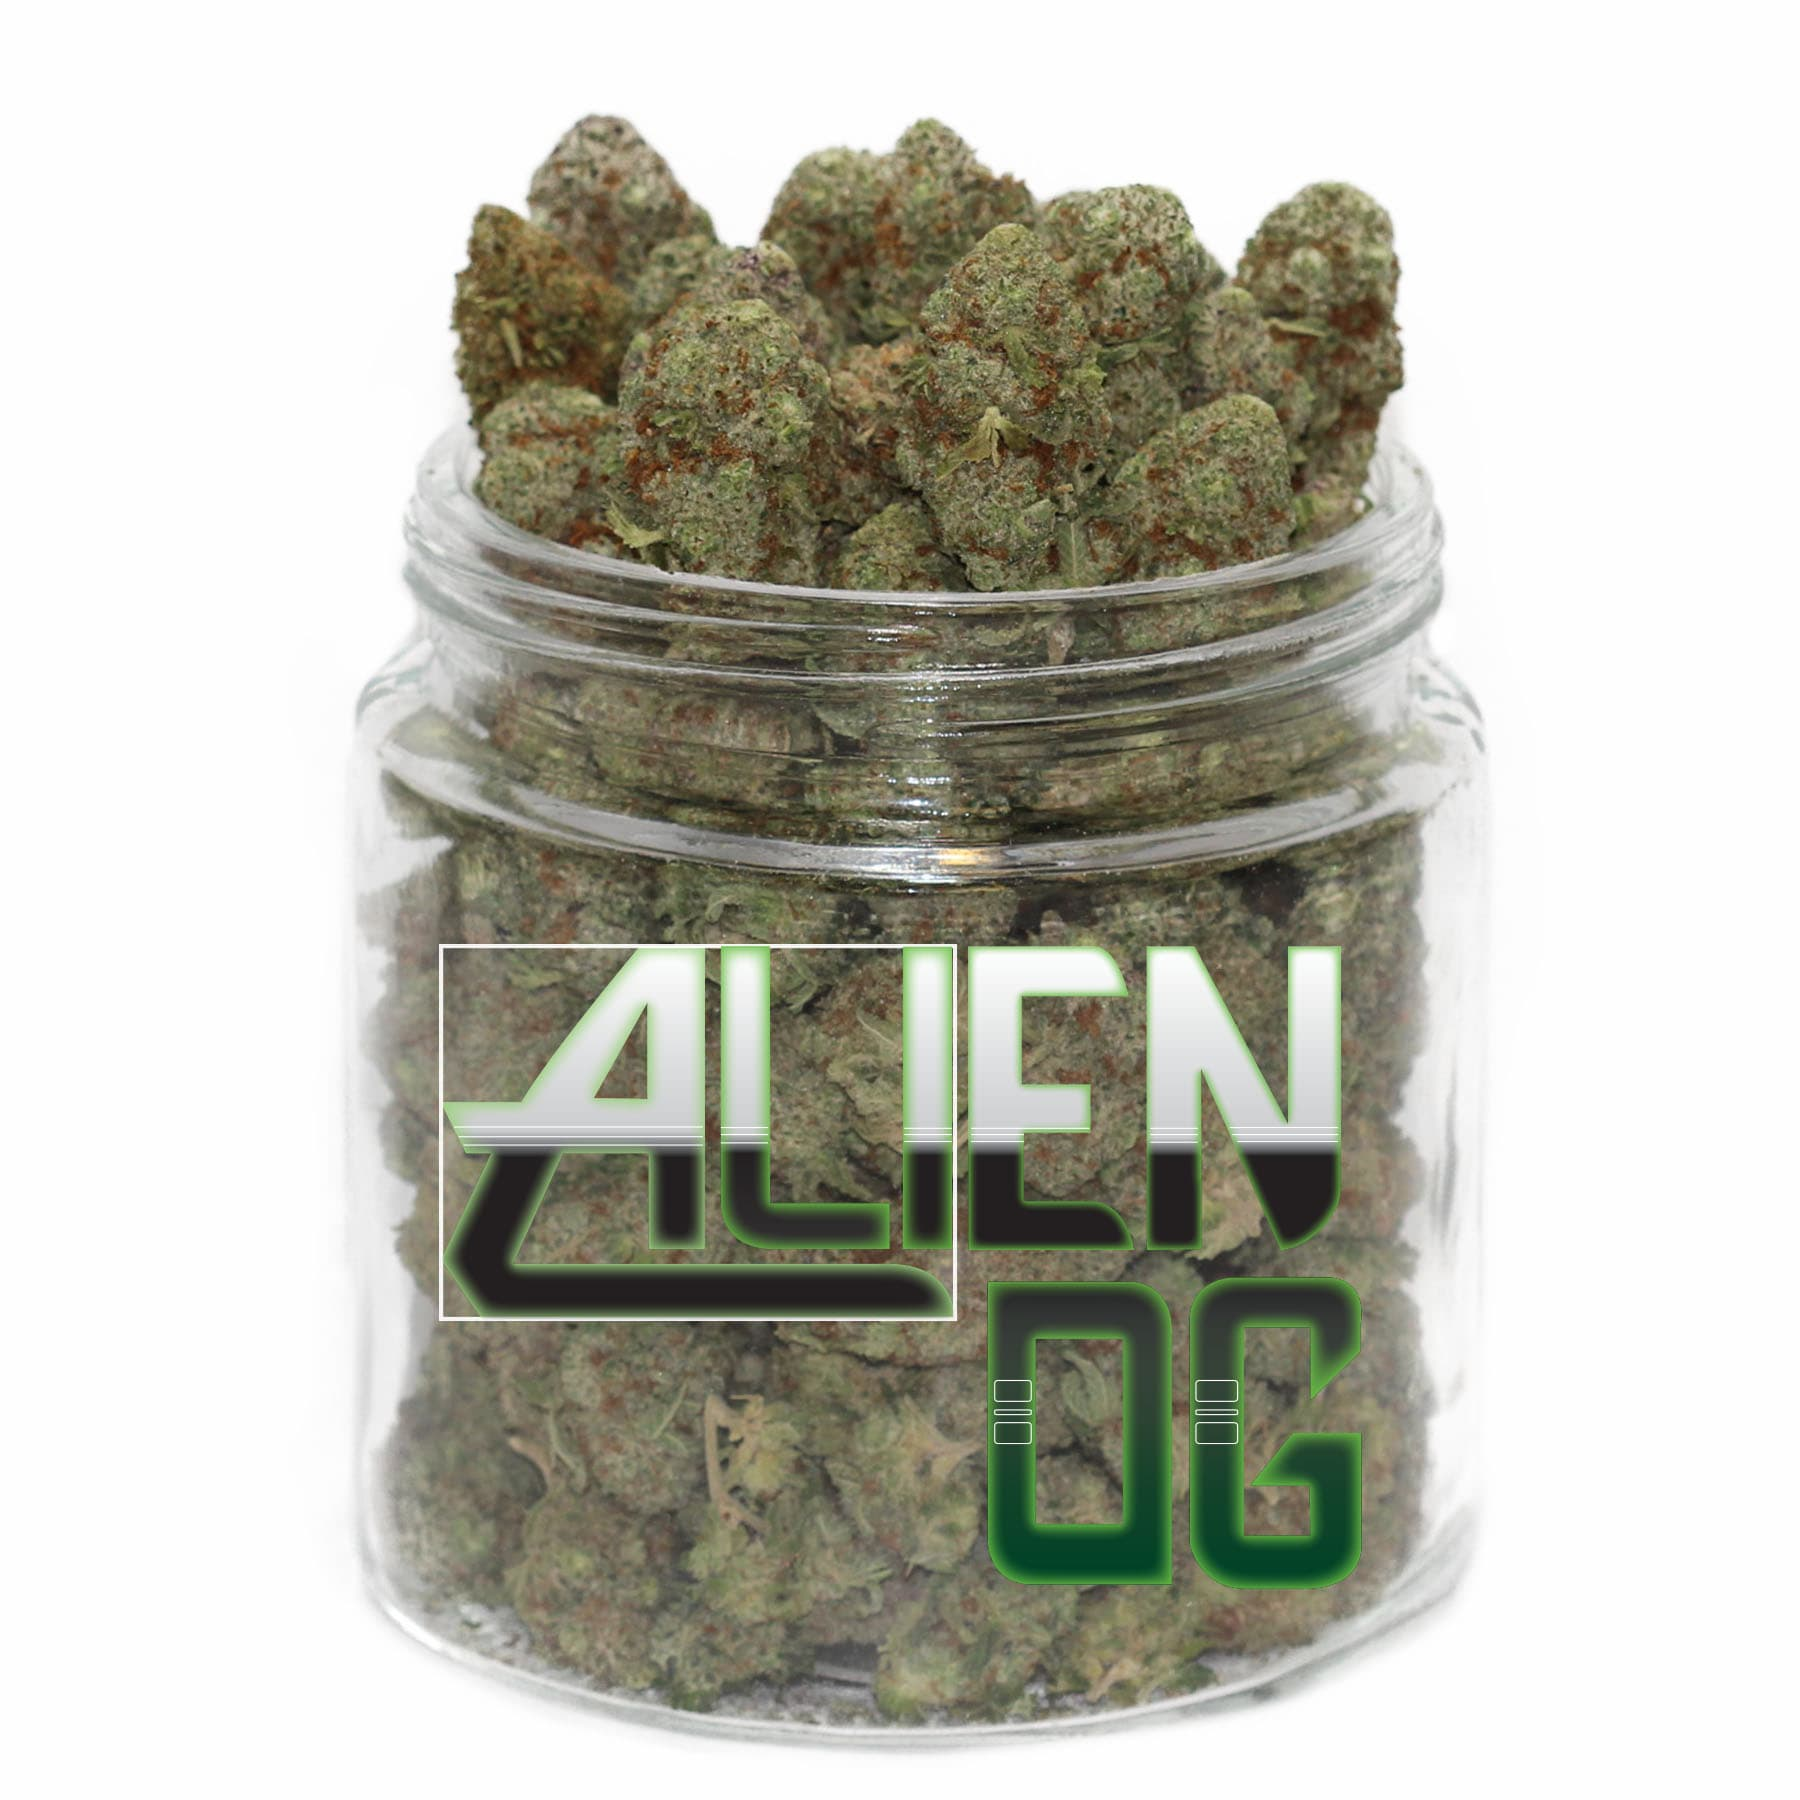 Alien OG (AAAA) by Get Kush - Image © 2020 Get Kush. All Rights Reserved.